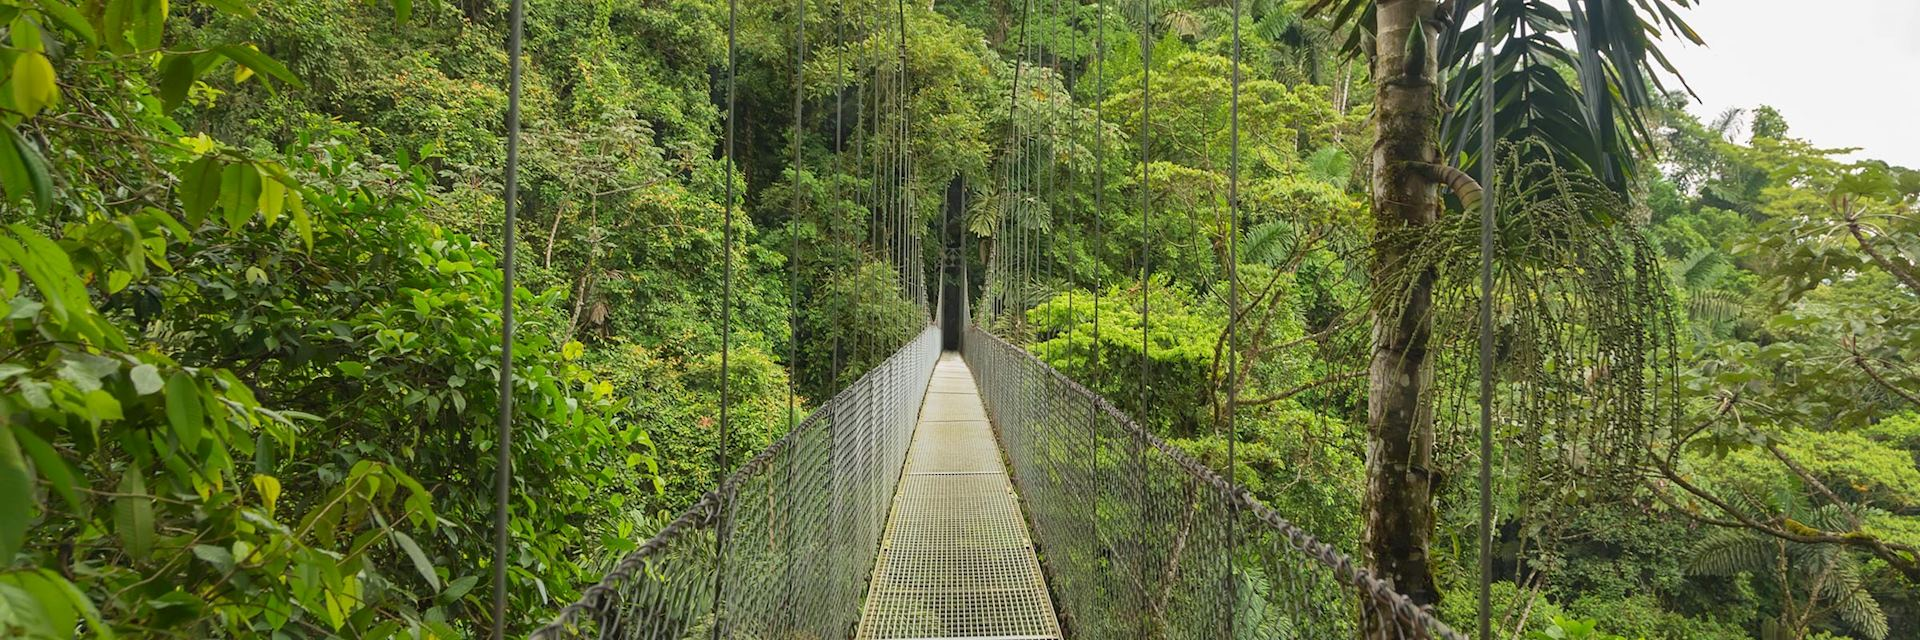 Cloud Forest bridge Costa Rica